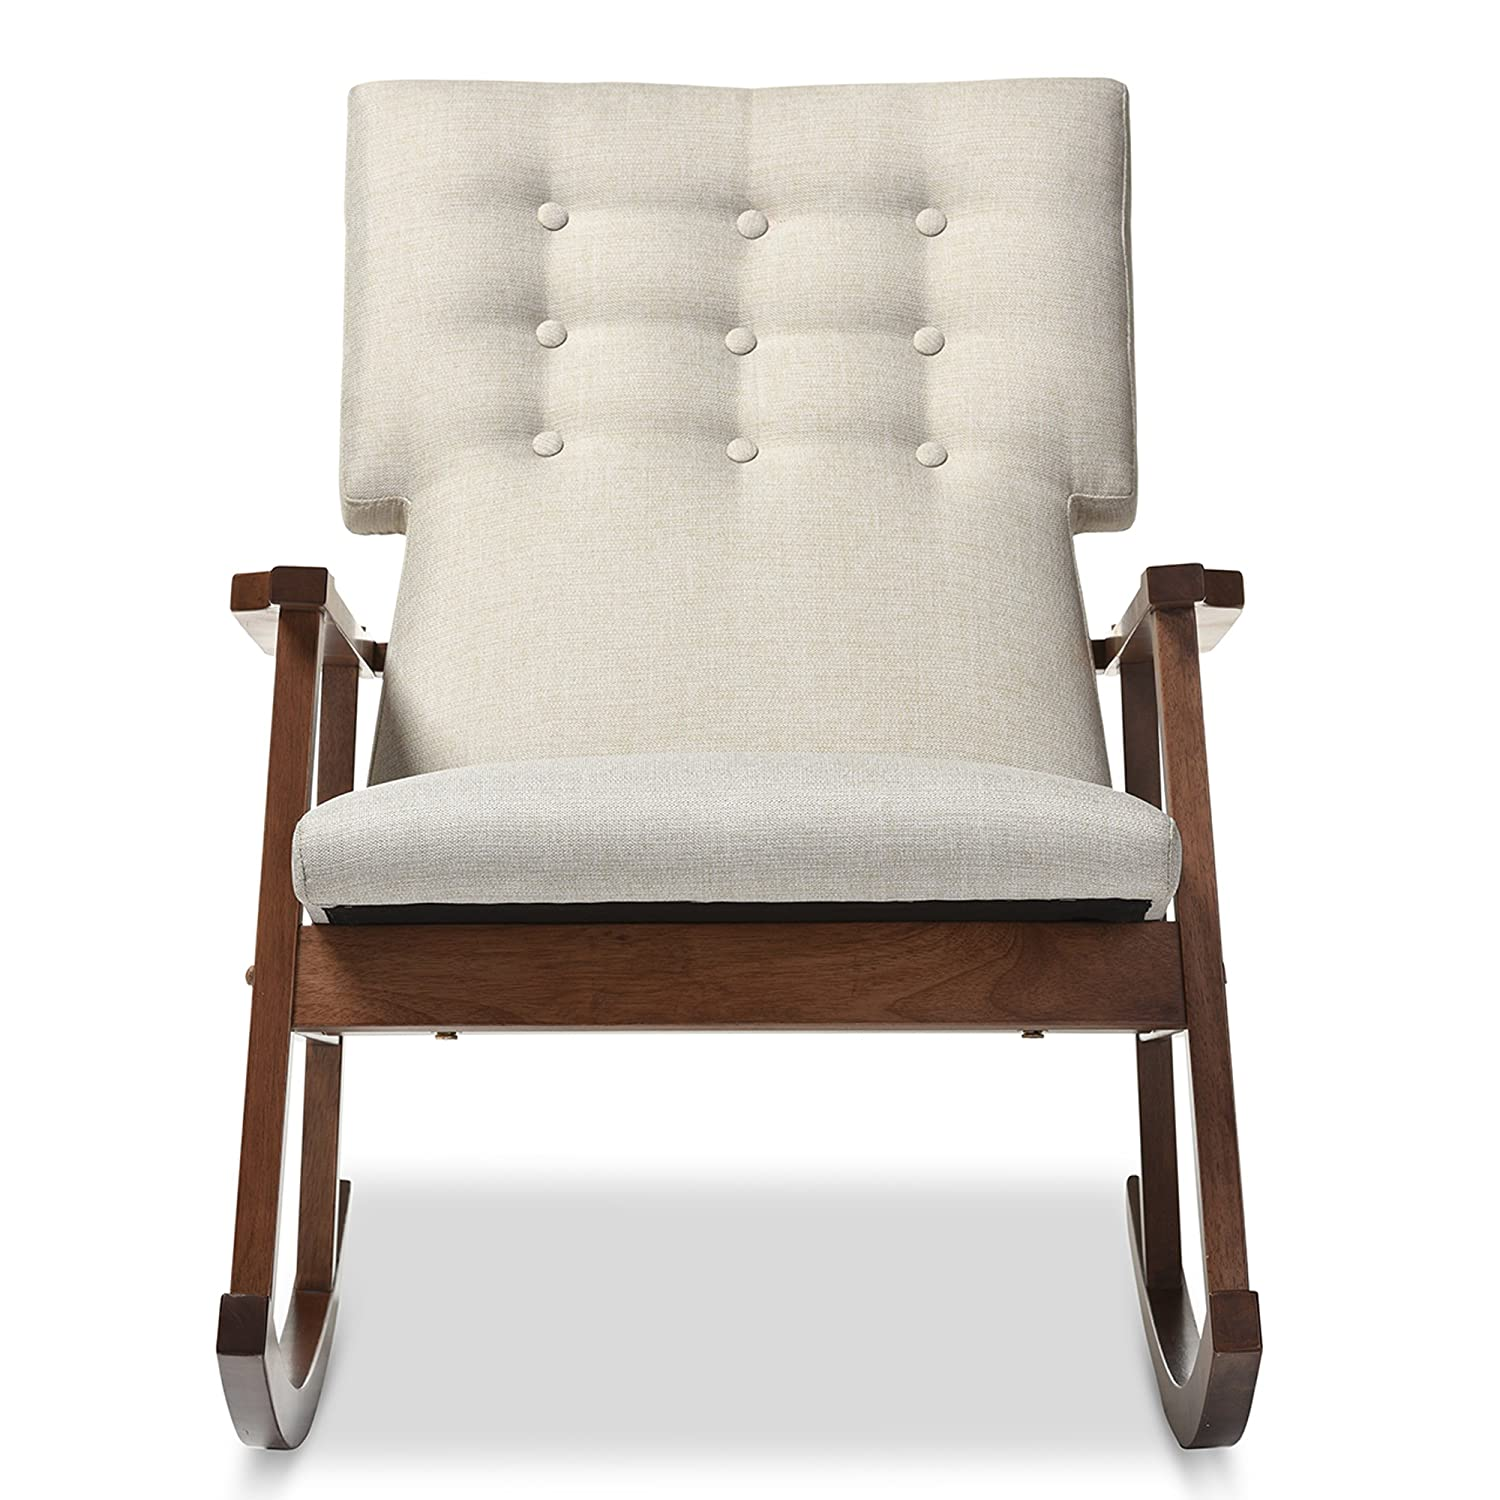 covered sunnyside century tc in mid dcp products vegan leather rocking style chair